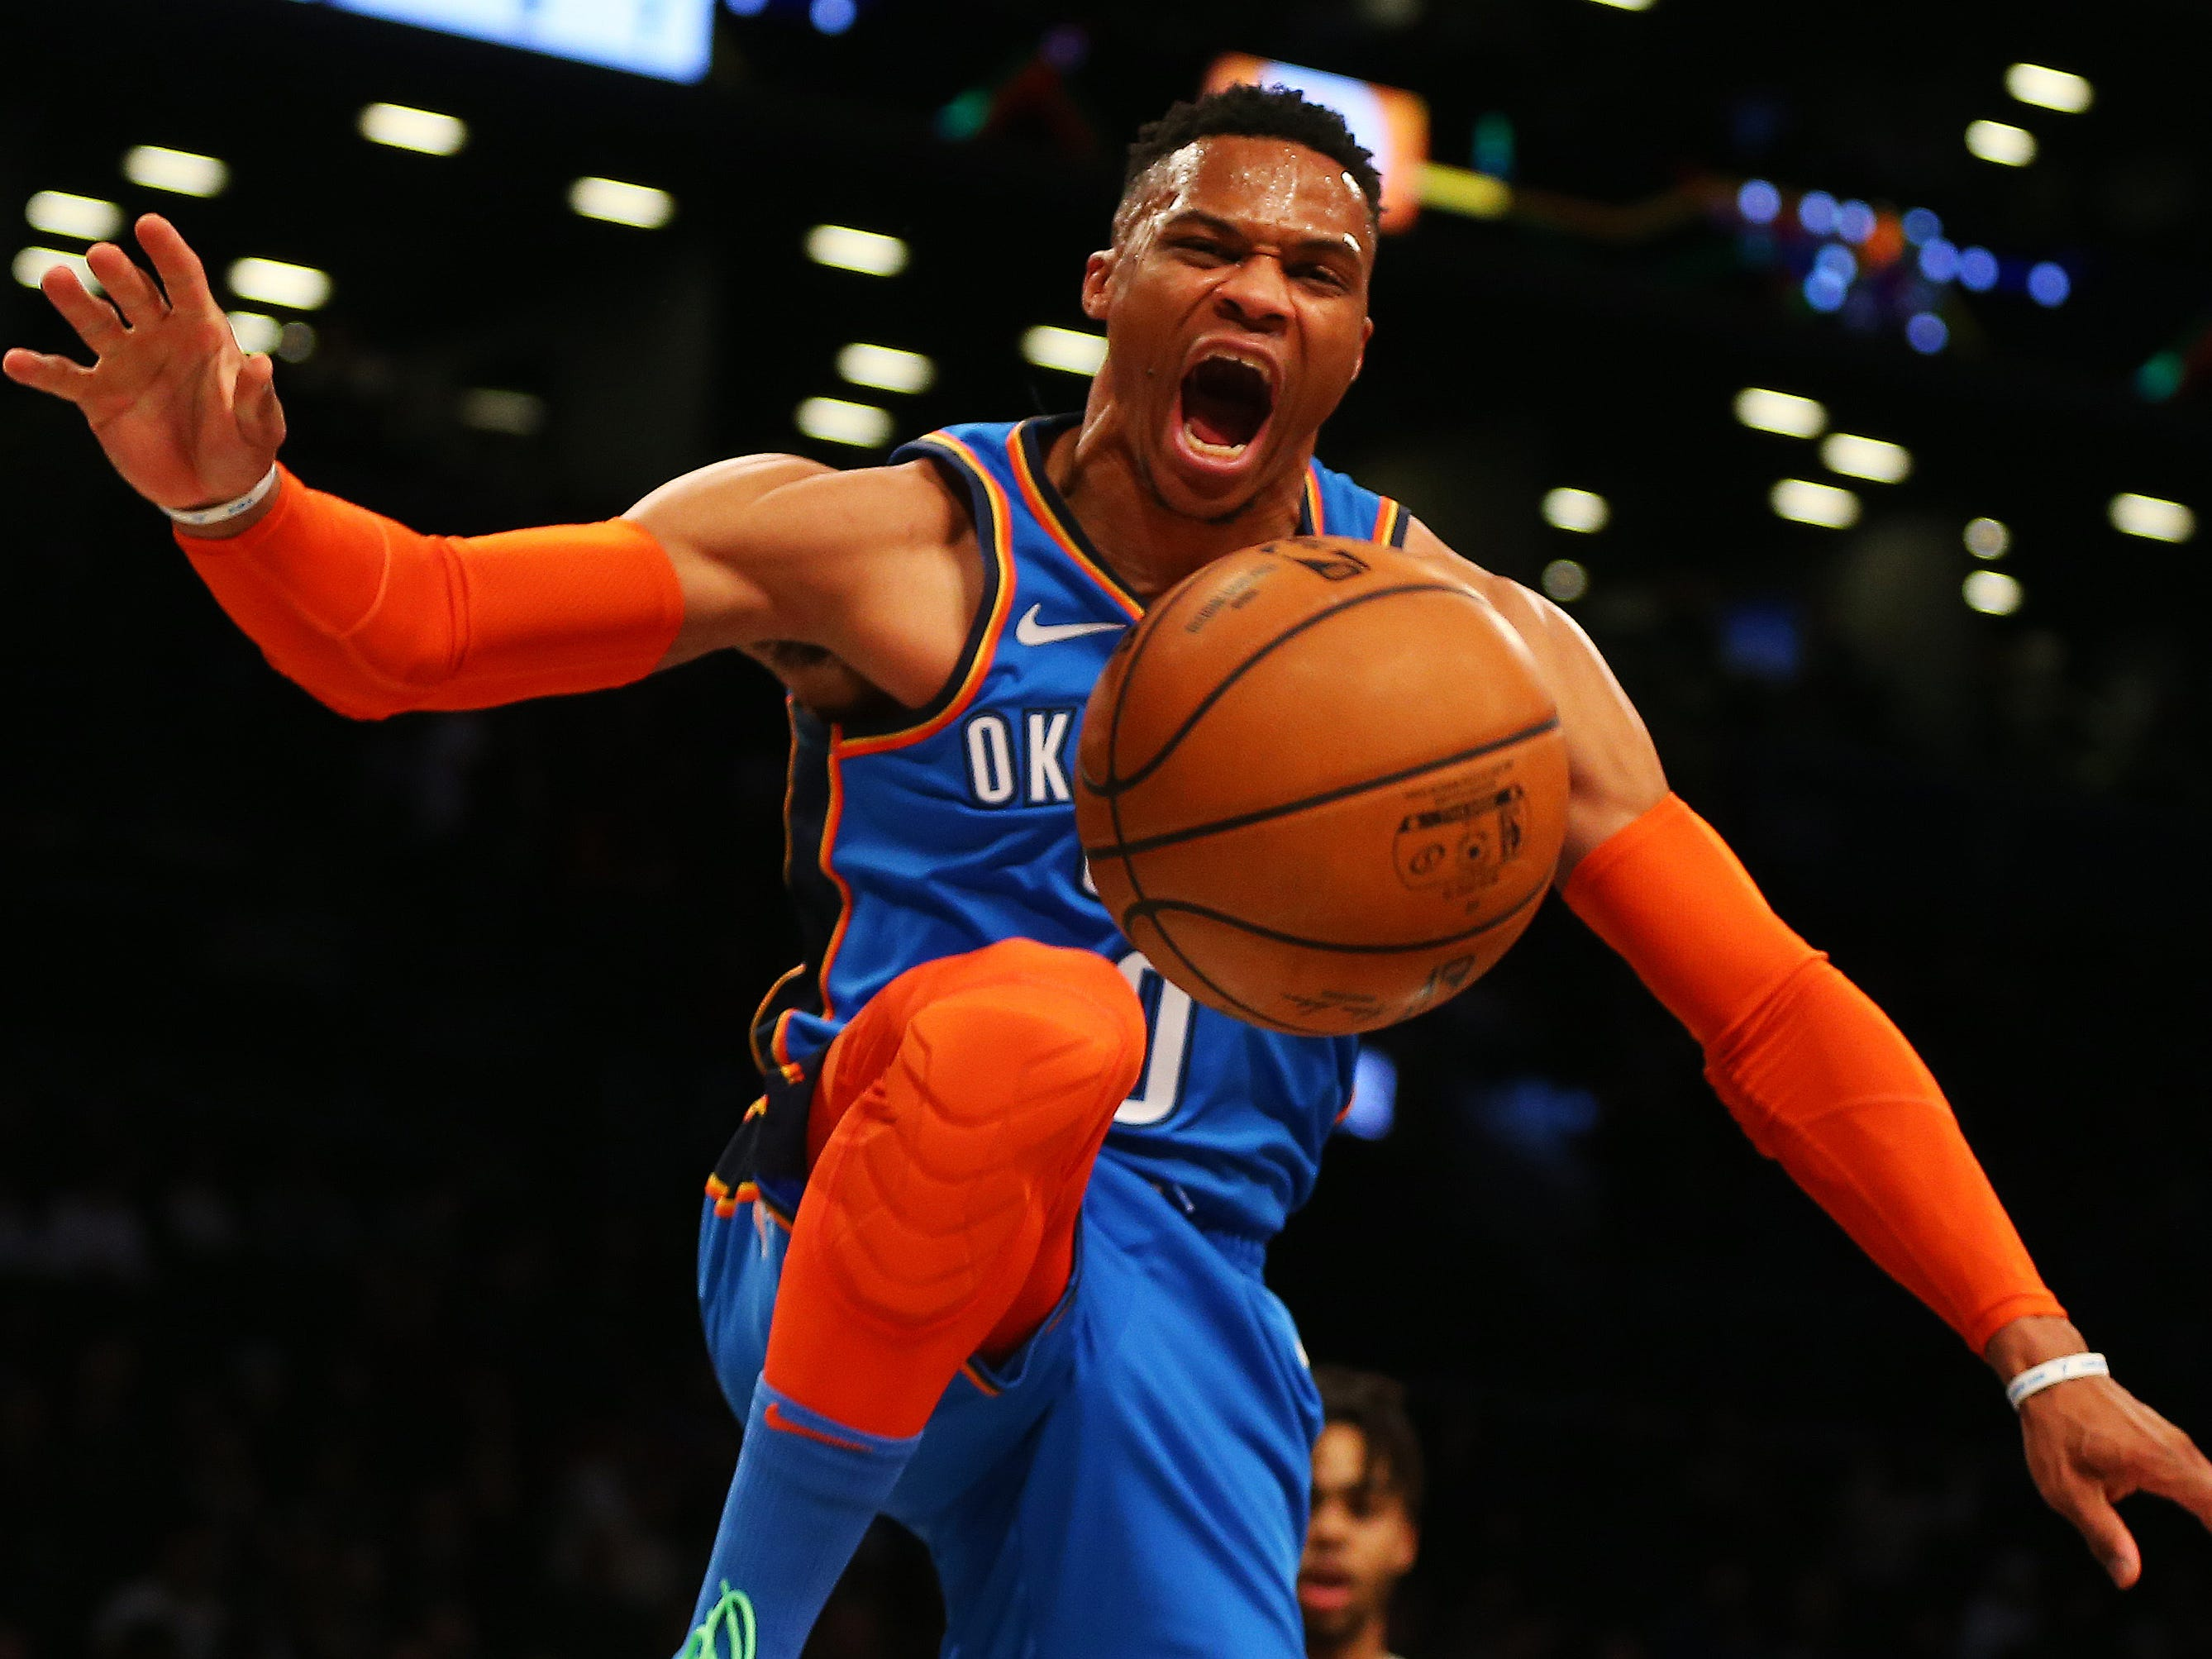 Dec. 5: Thunder guard Russell Westbrook throws down a two-handed slam during the first half against the Nets in Brooklyn.